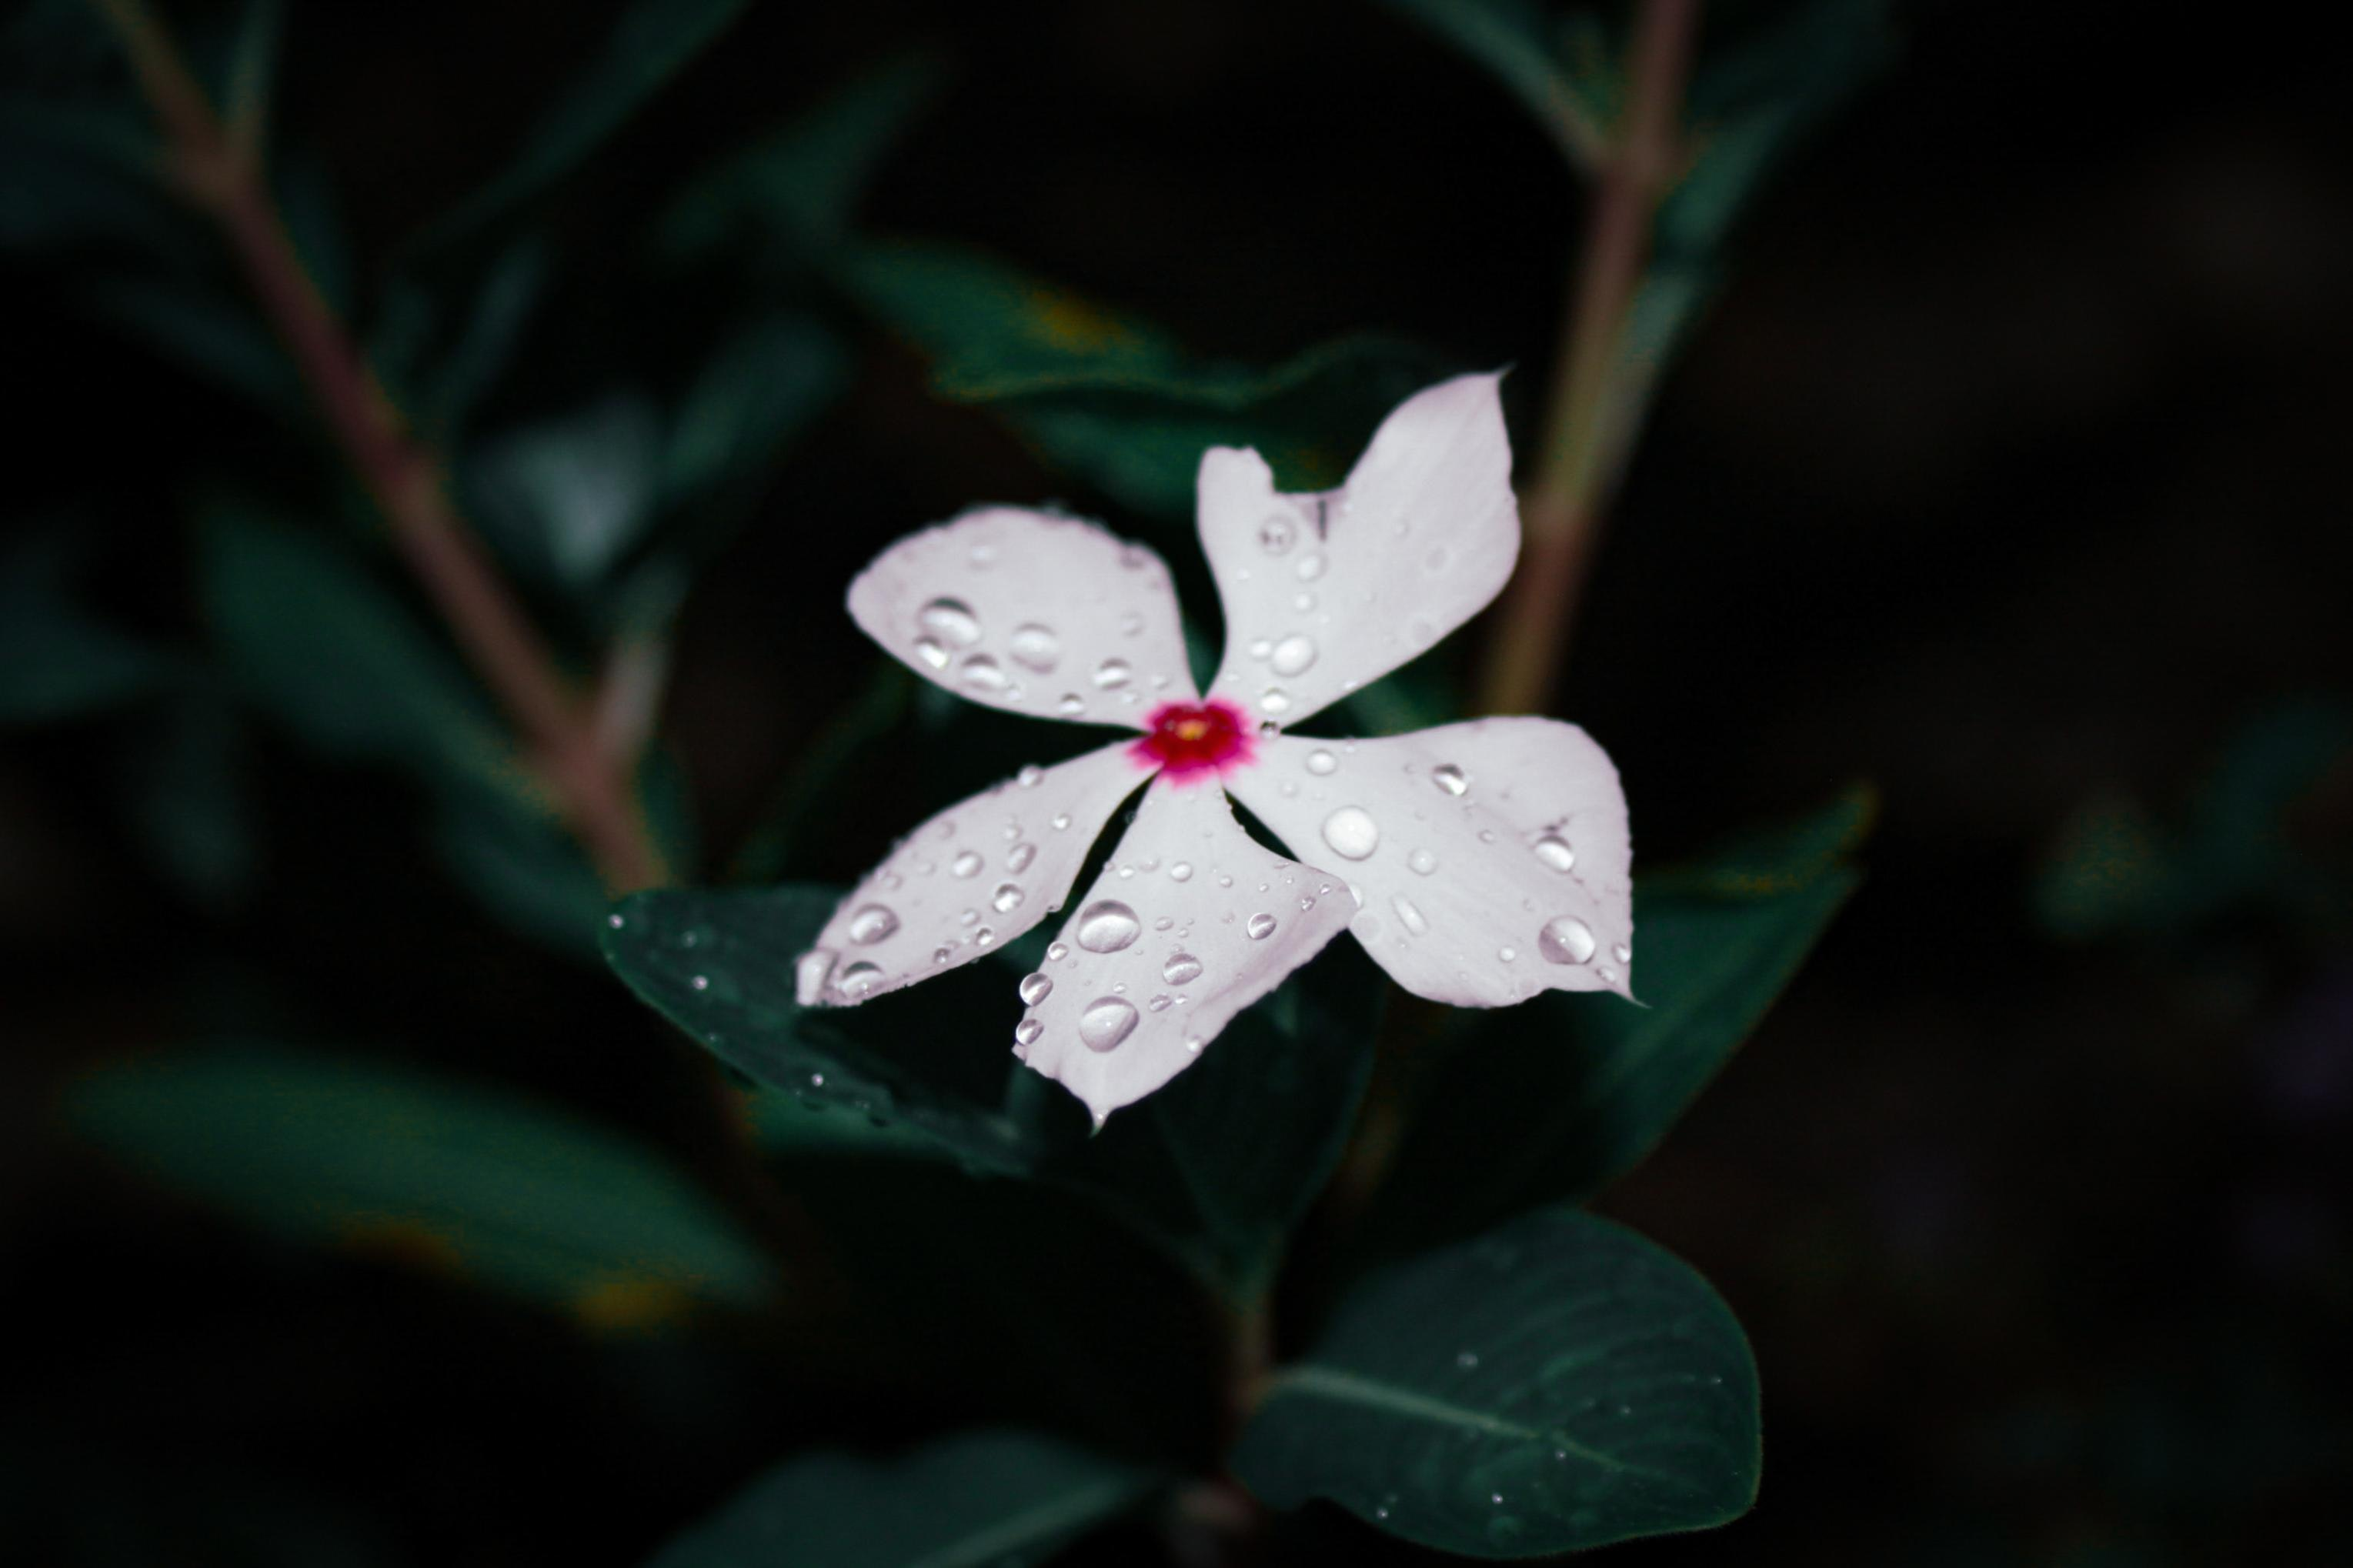 periwinkle in bloom with water droplets